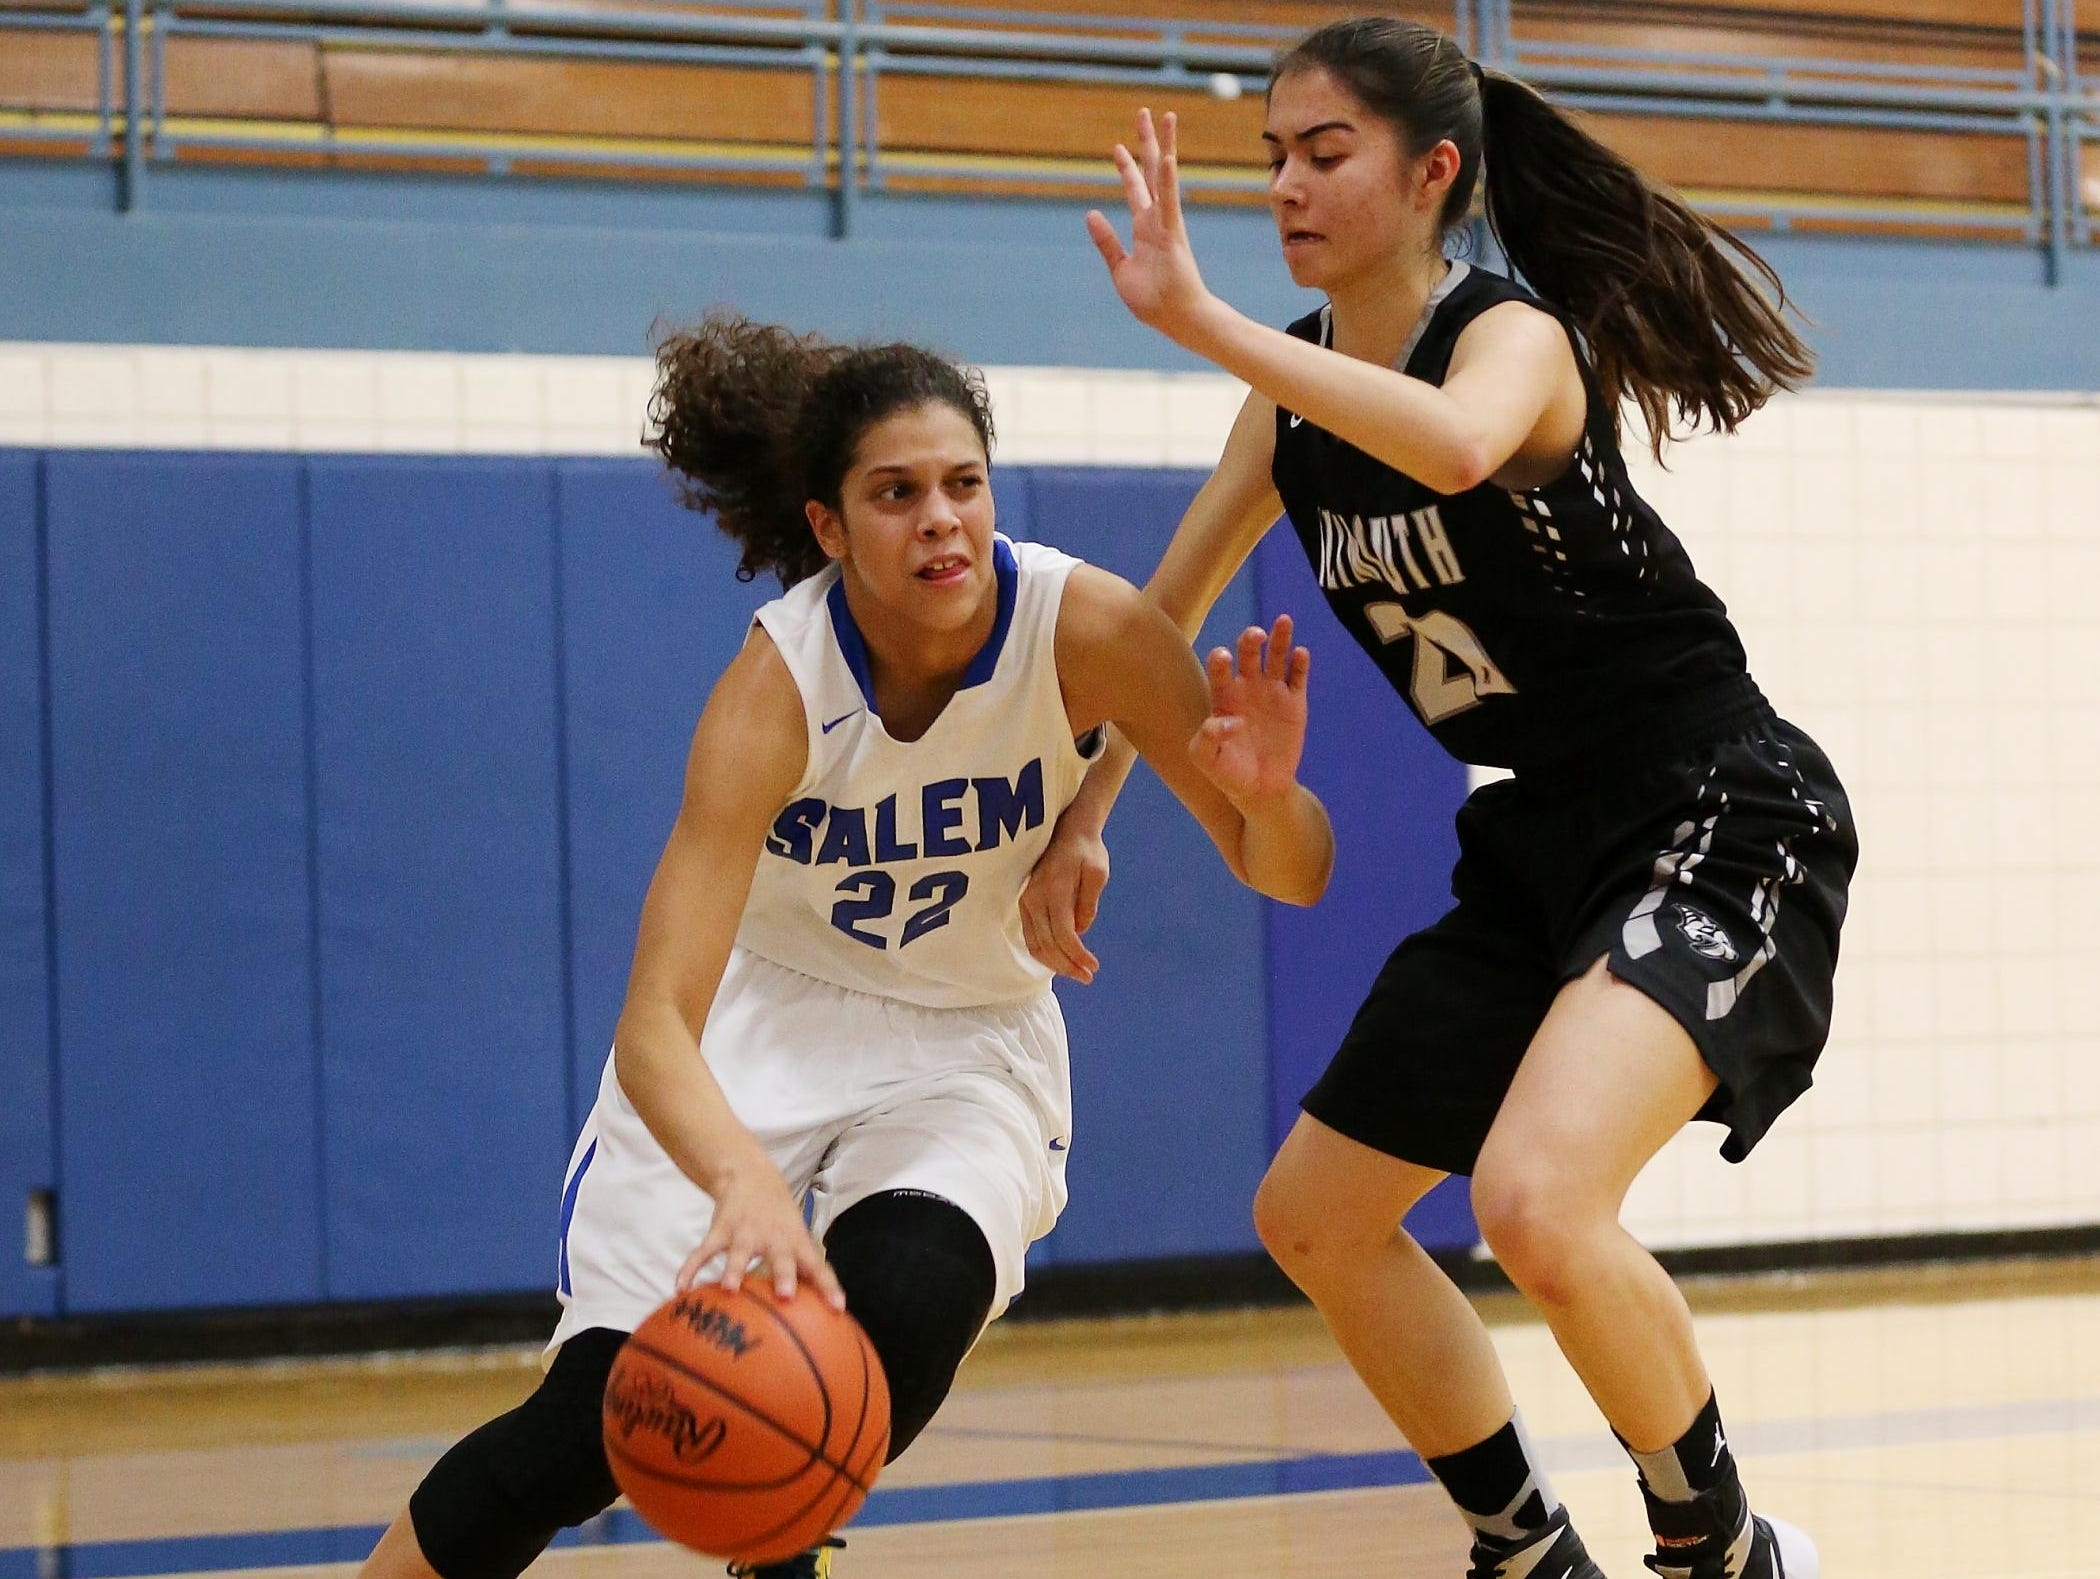 Salem sophomore Lasha Petree (No. 22) tries to dribble around Plymouth senior Bailey Brown (No. 20) during Tuesday's opener.